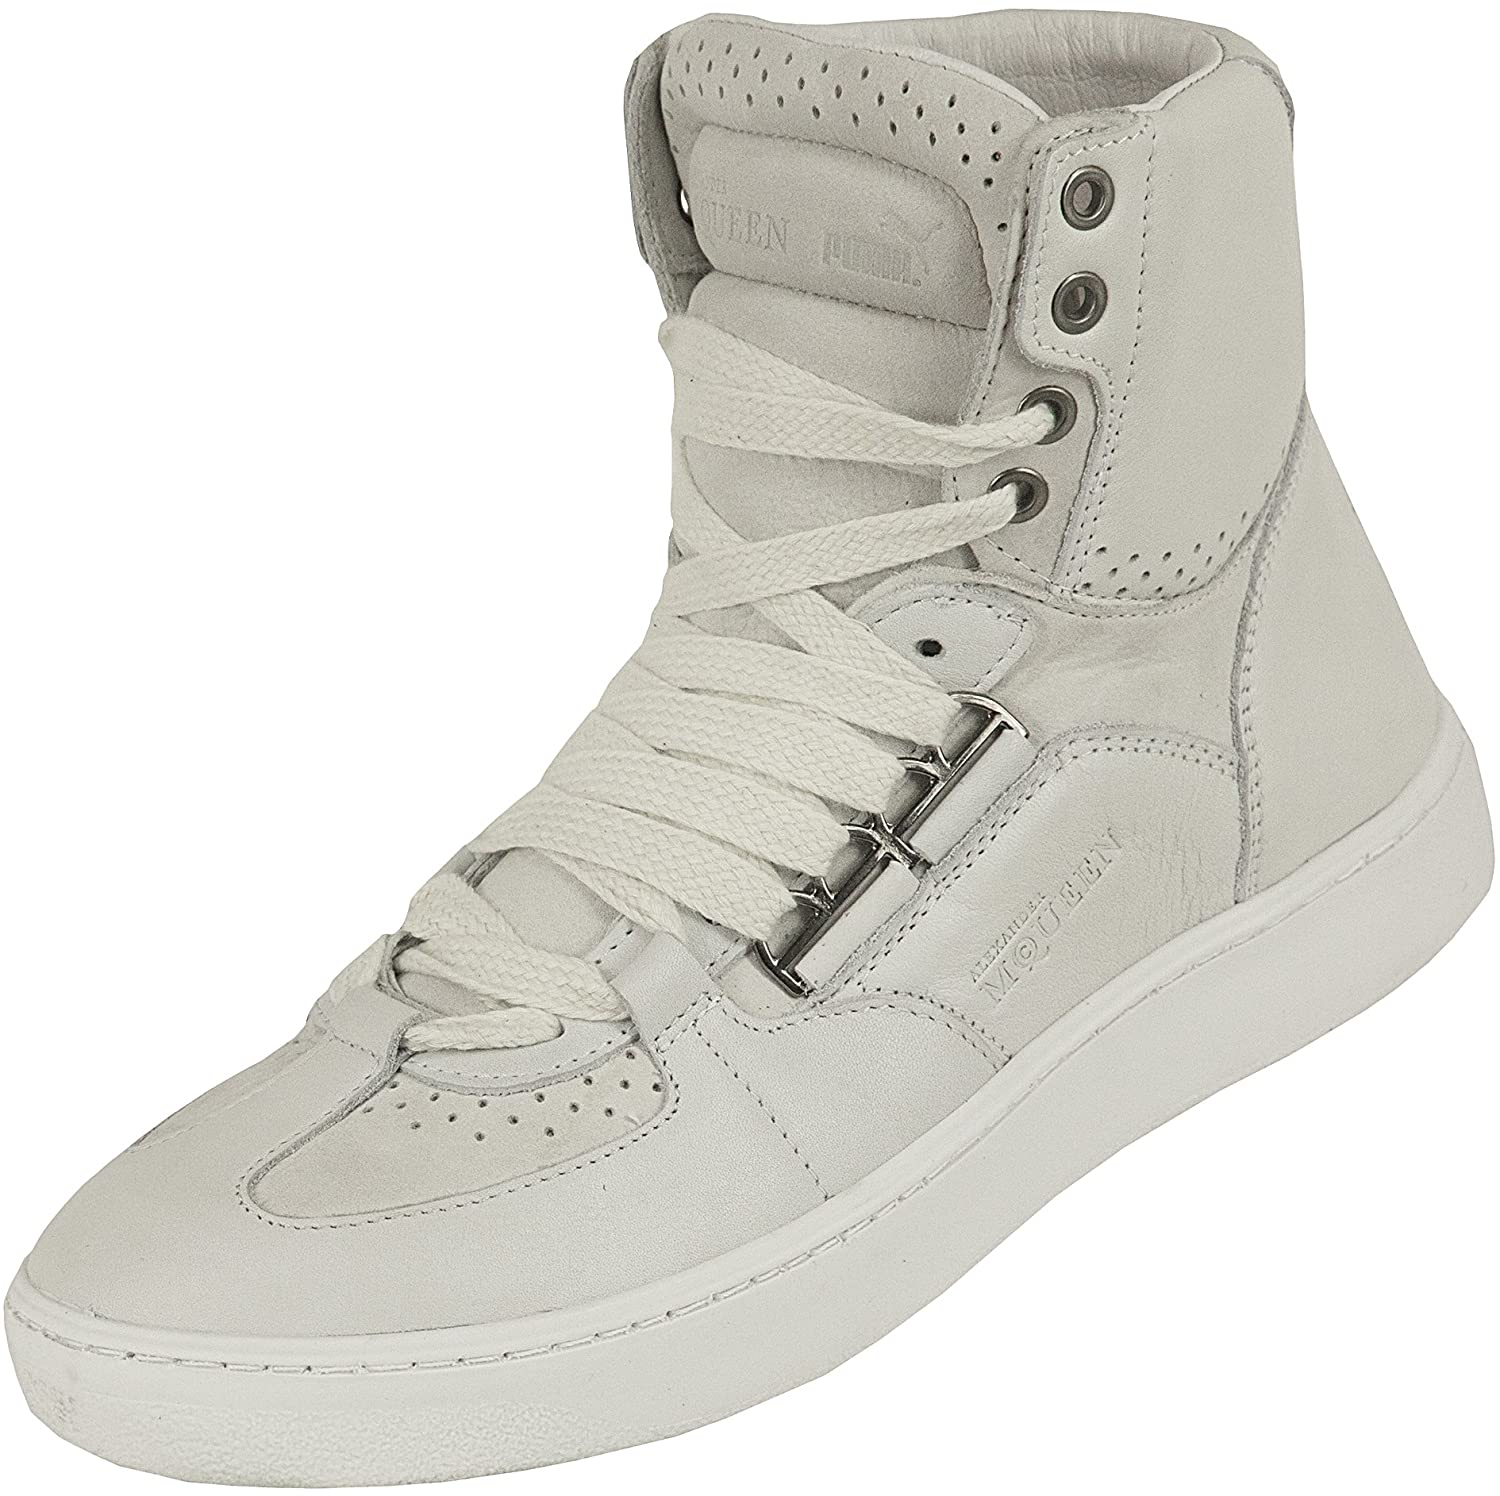 Alexander McQueen Joust Zapatillas de media IV negro, color blanco, talla 39 EU: Amazon.es: Zapatos y complementos